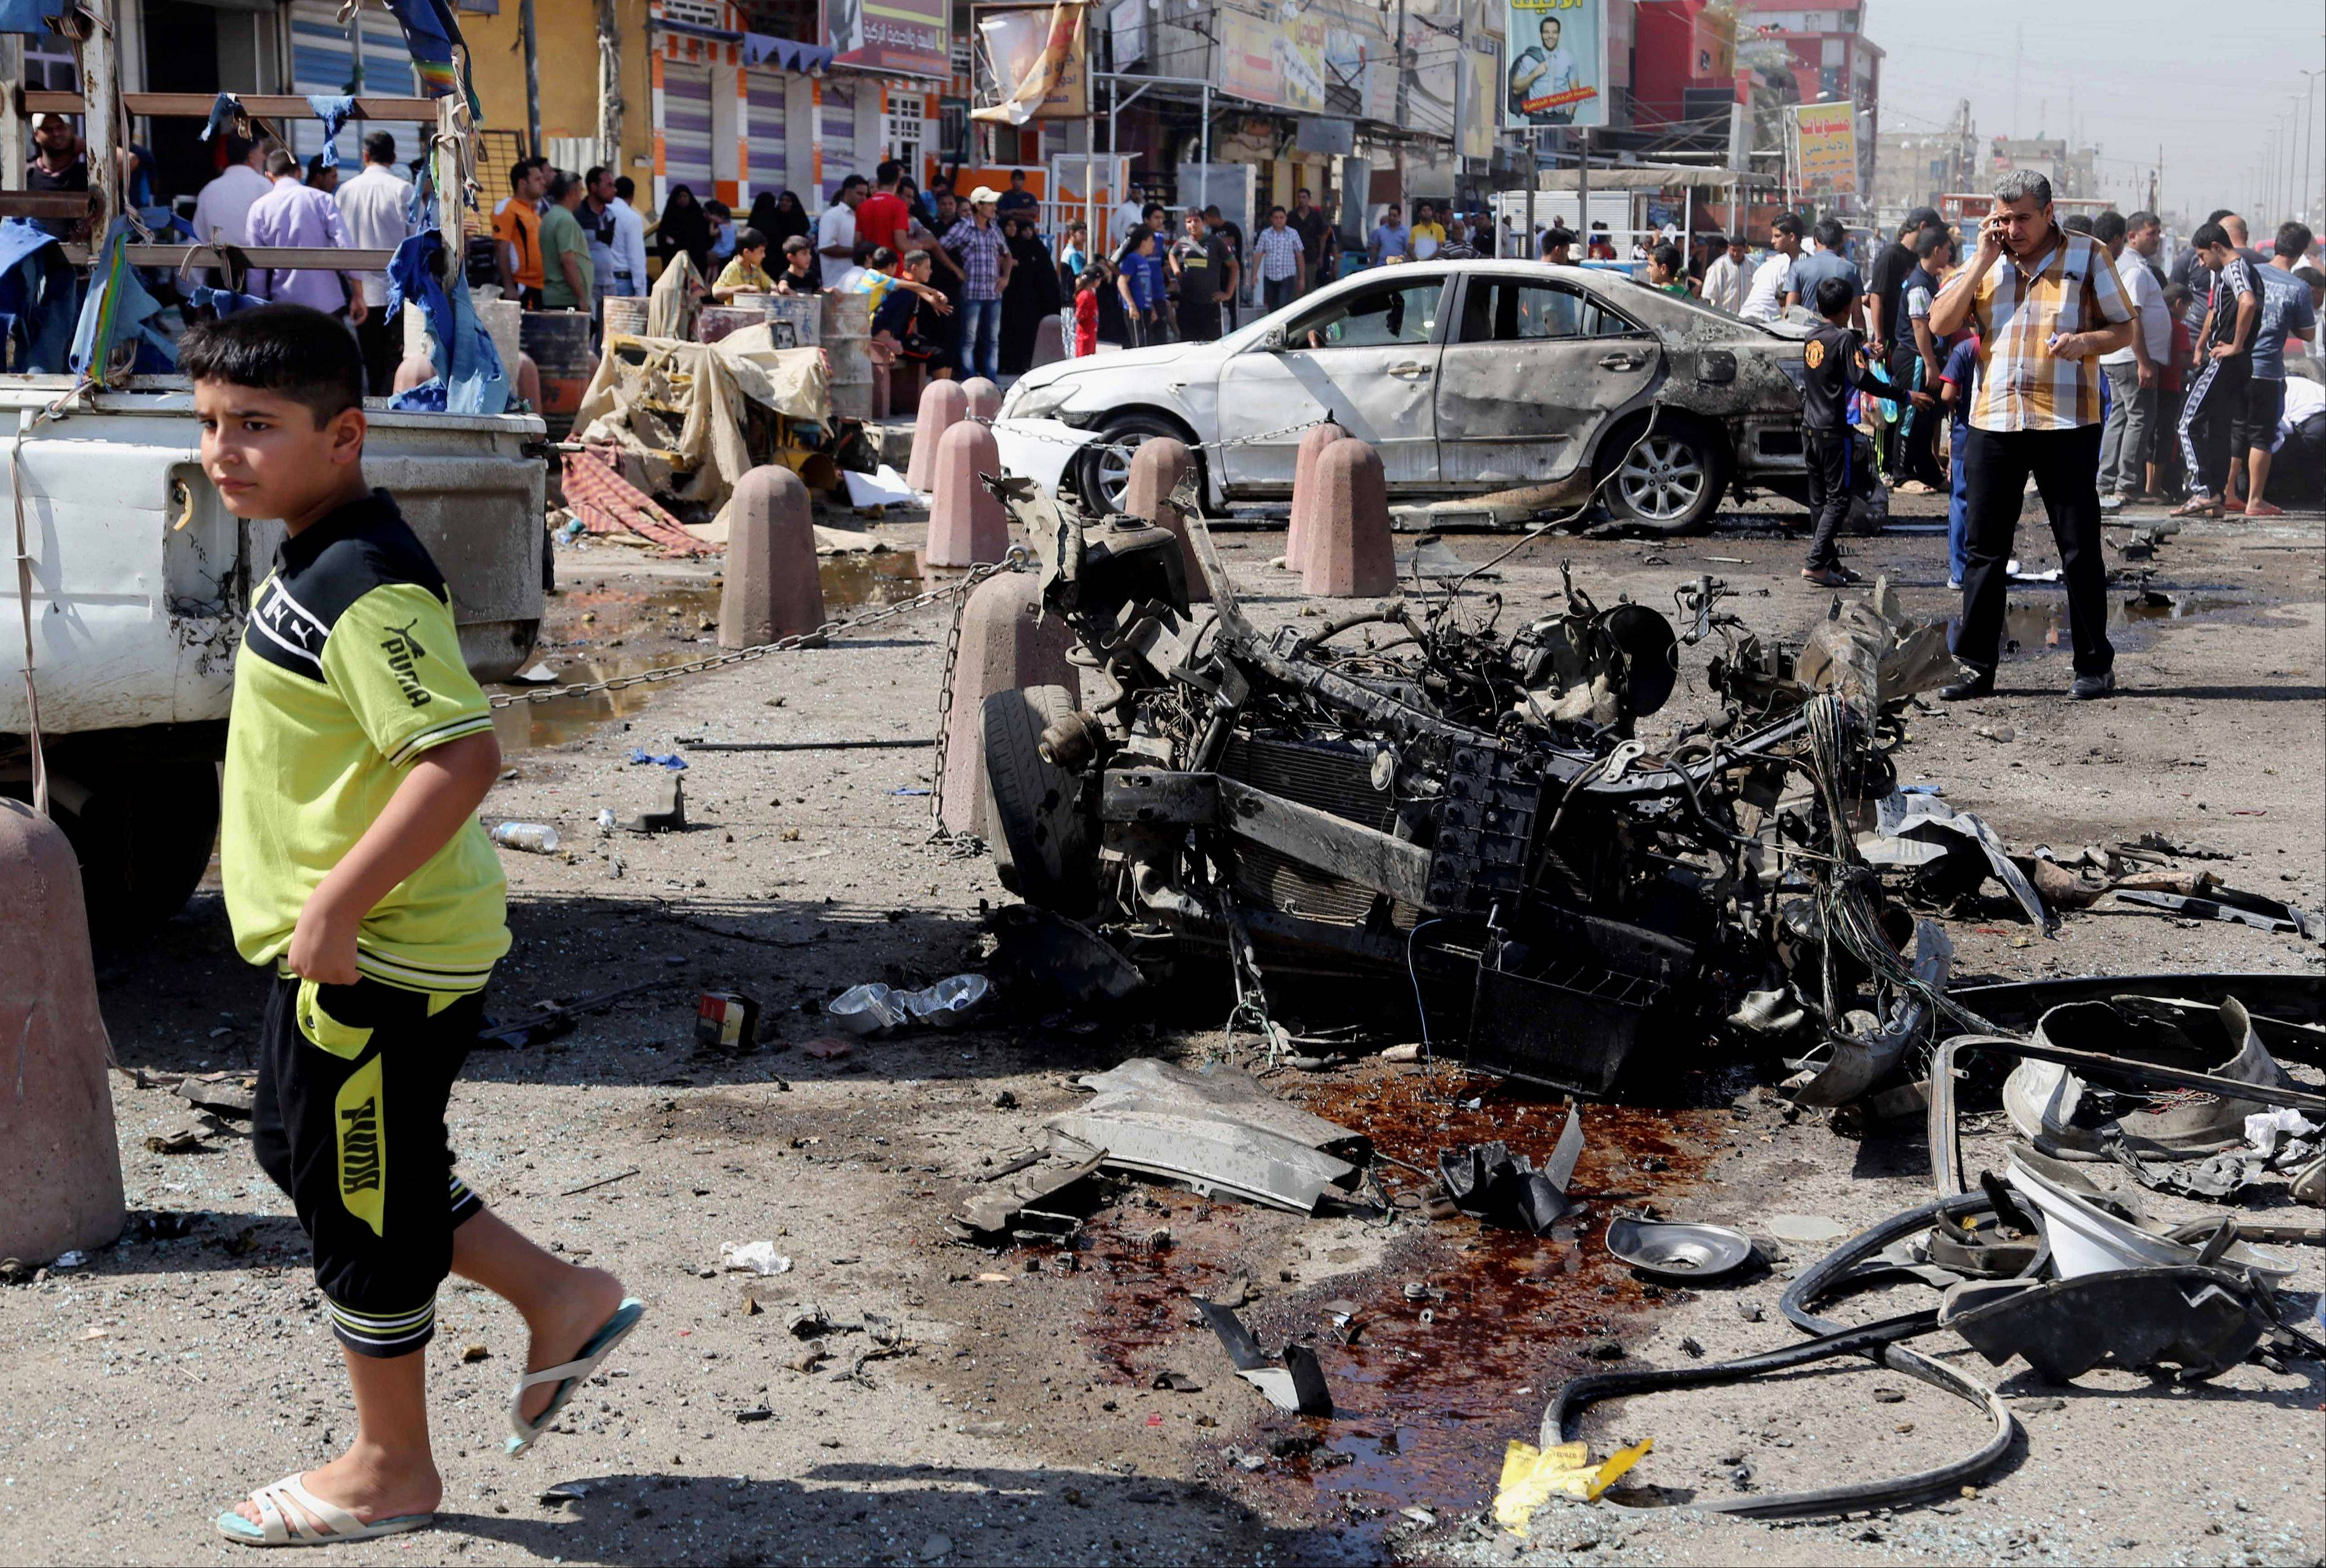 A coordinated wave of bombings tore through Shiite Muslim areas in and around the Iraqi capital early Wednesday, killing scores and wounding many more, officials said. The blasts, which came in quick succession, targeted residents out shopping and on their way to work.